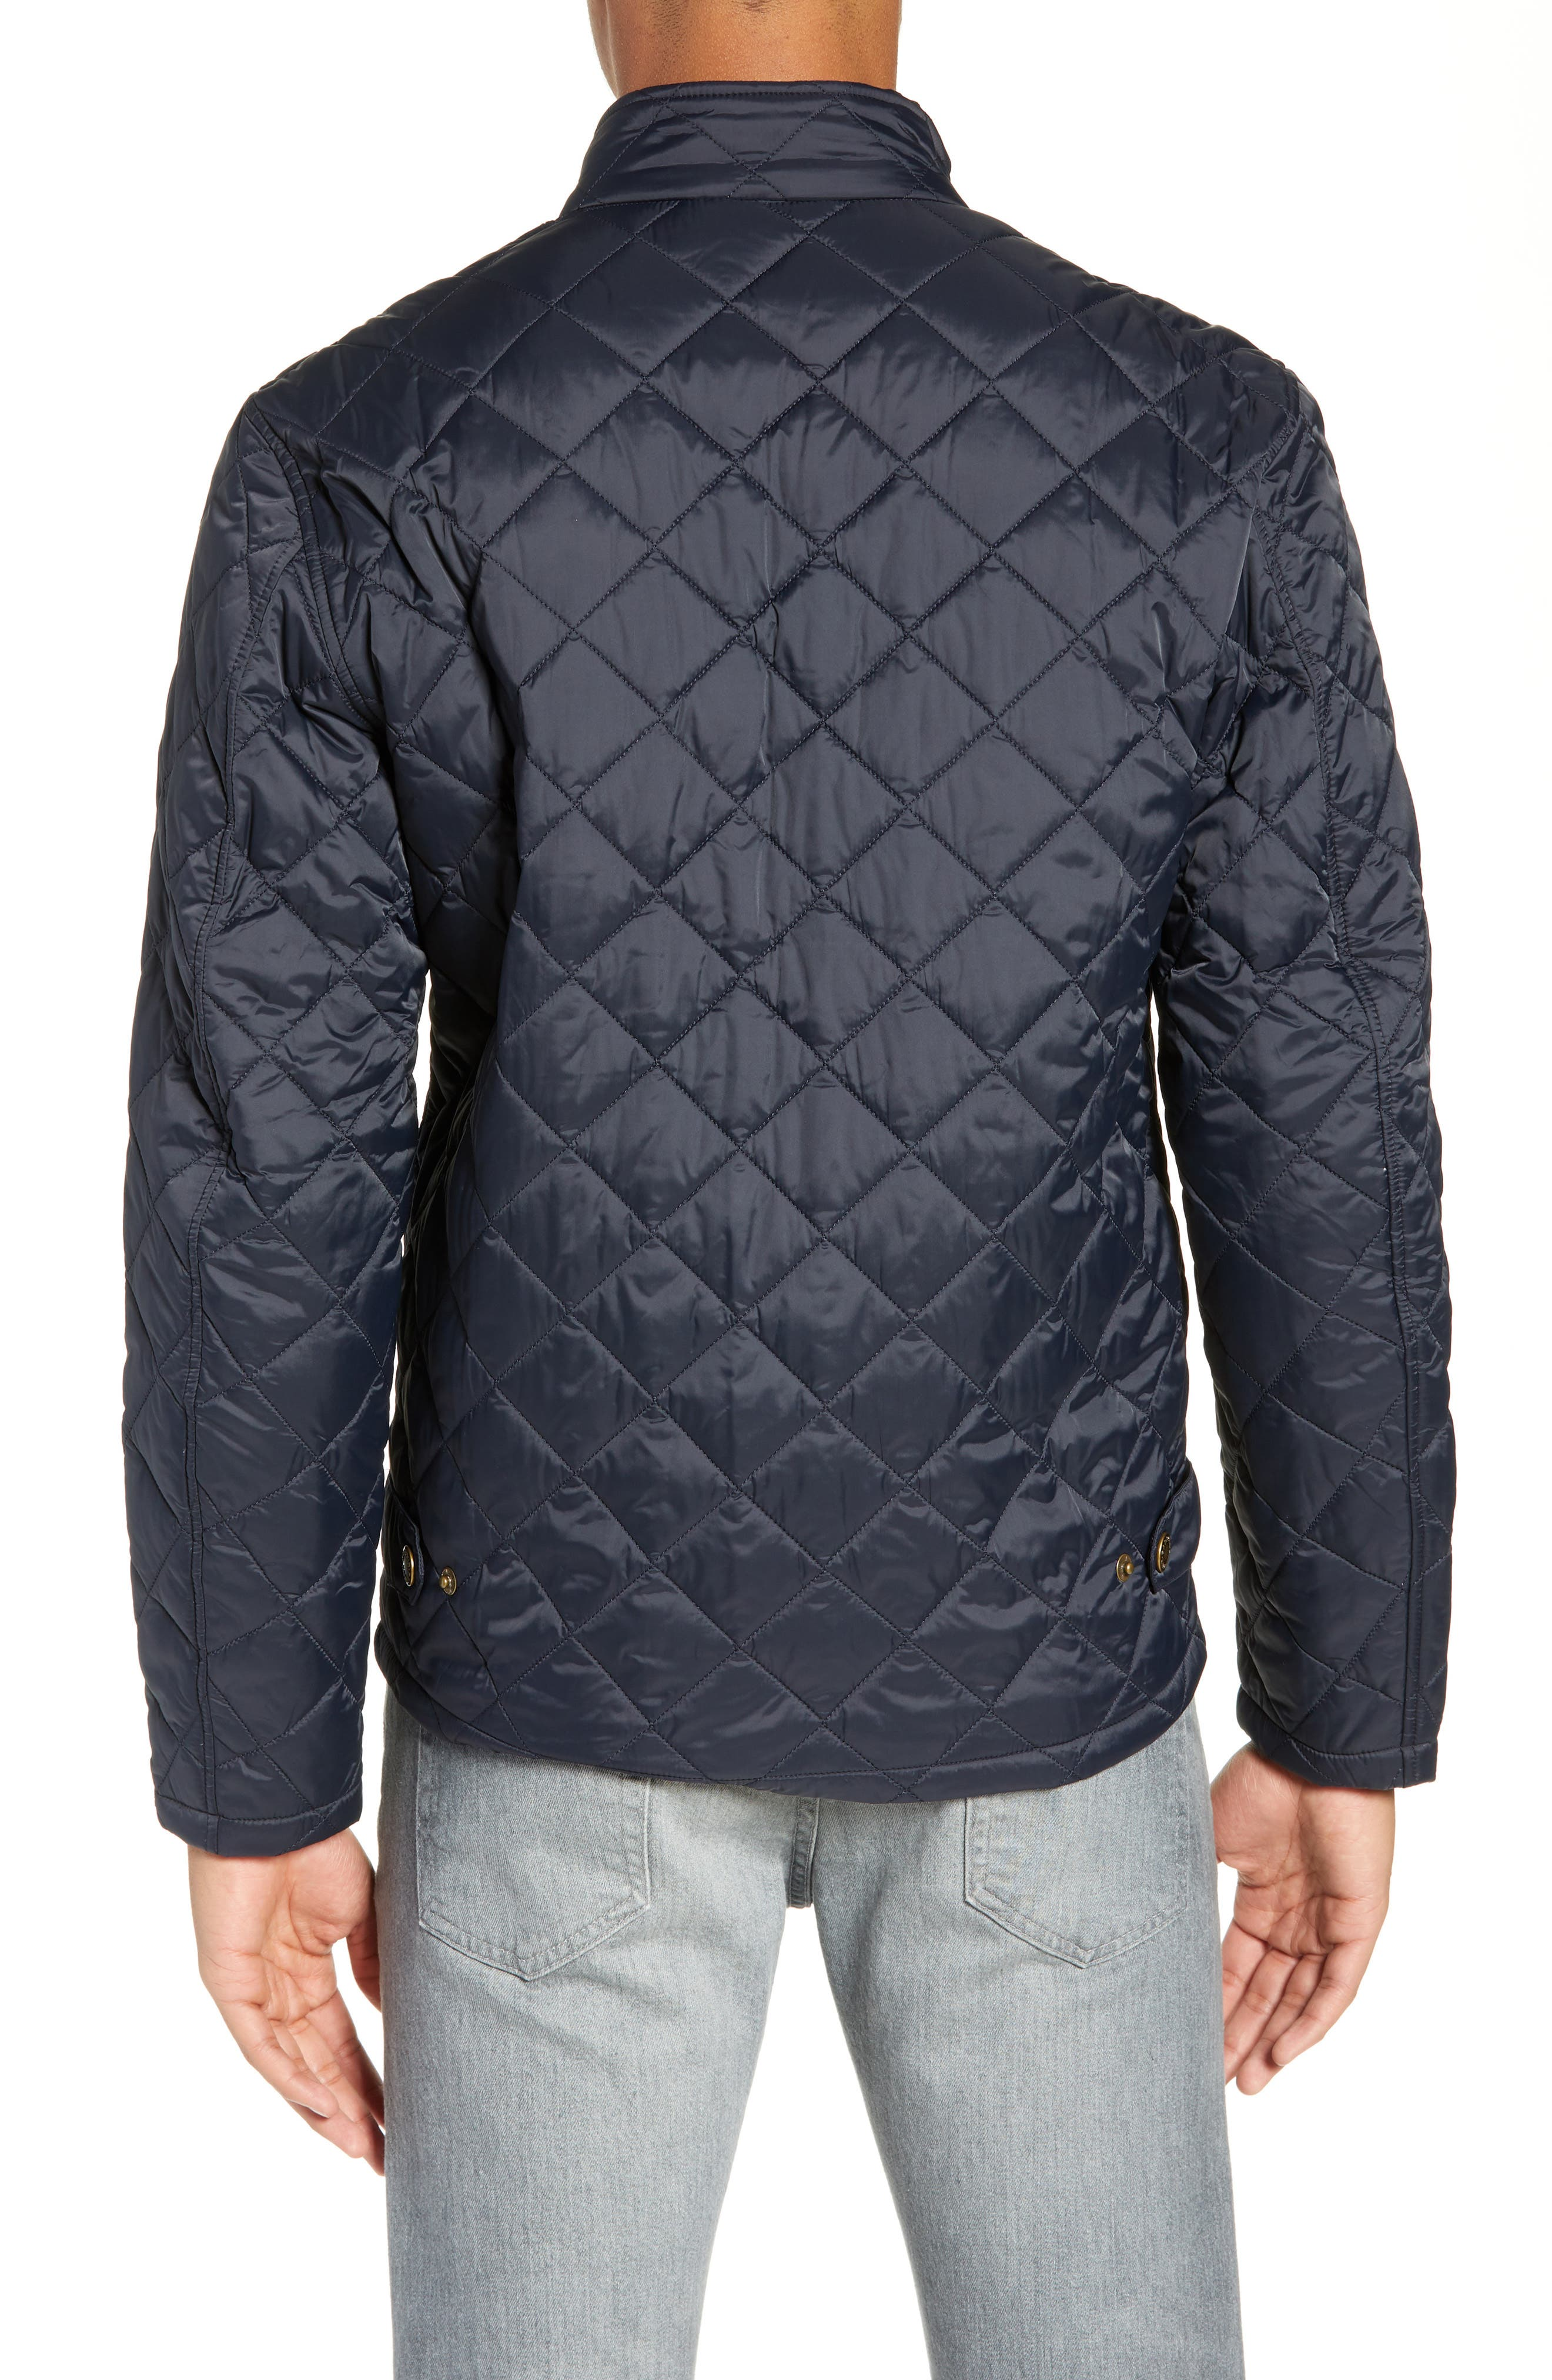 BARBOUR, Barbout Abaft Quilted Jacket, Alternate thumbnail 2, color, NAVY